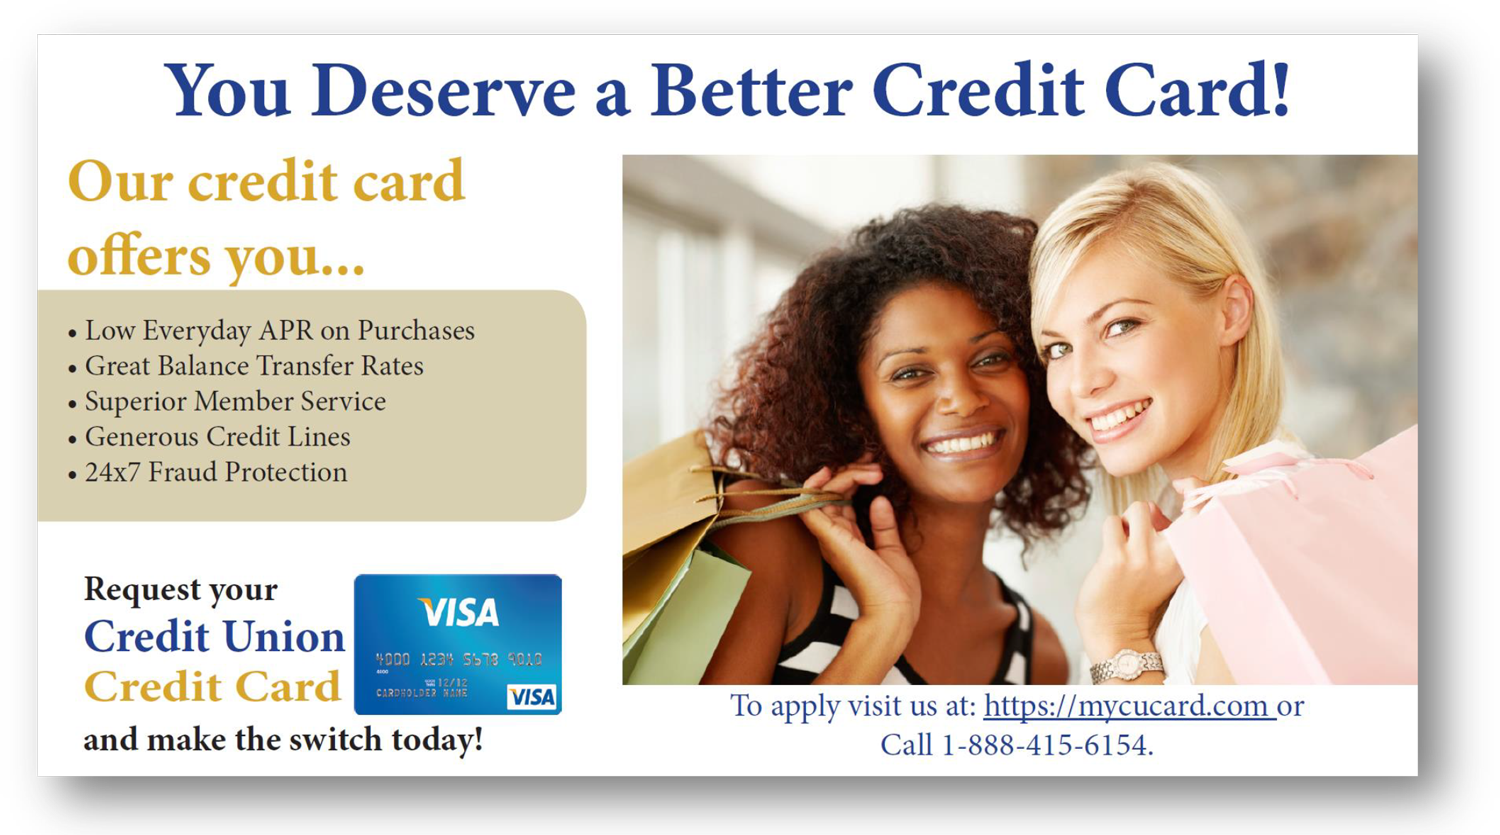 You deserve a better credit card! Our credit card offers you low everyday APR on purchases, great balance transfer rates, superior member service, generous credit lines, and 24x7 fraud protection. Request your credit union Visa card and make the switch today! To apply, visit us at: mycucard.com or call 1-888-415-6154.